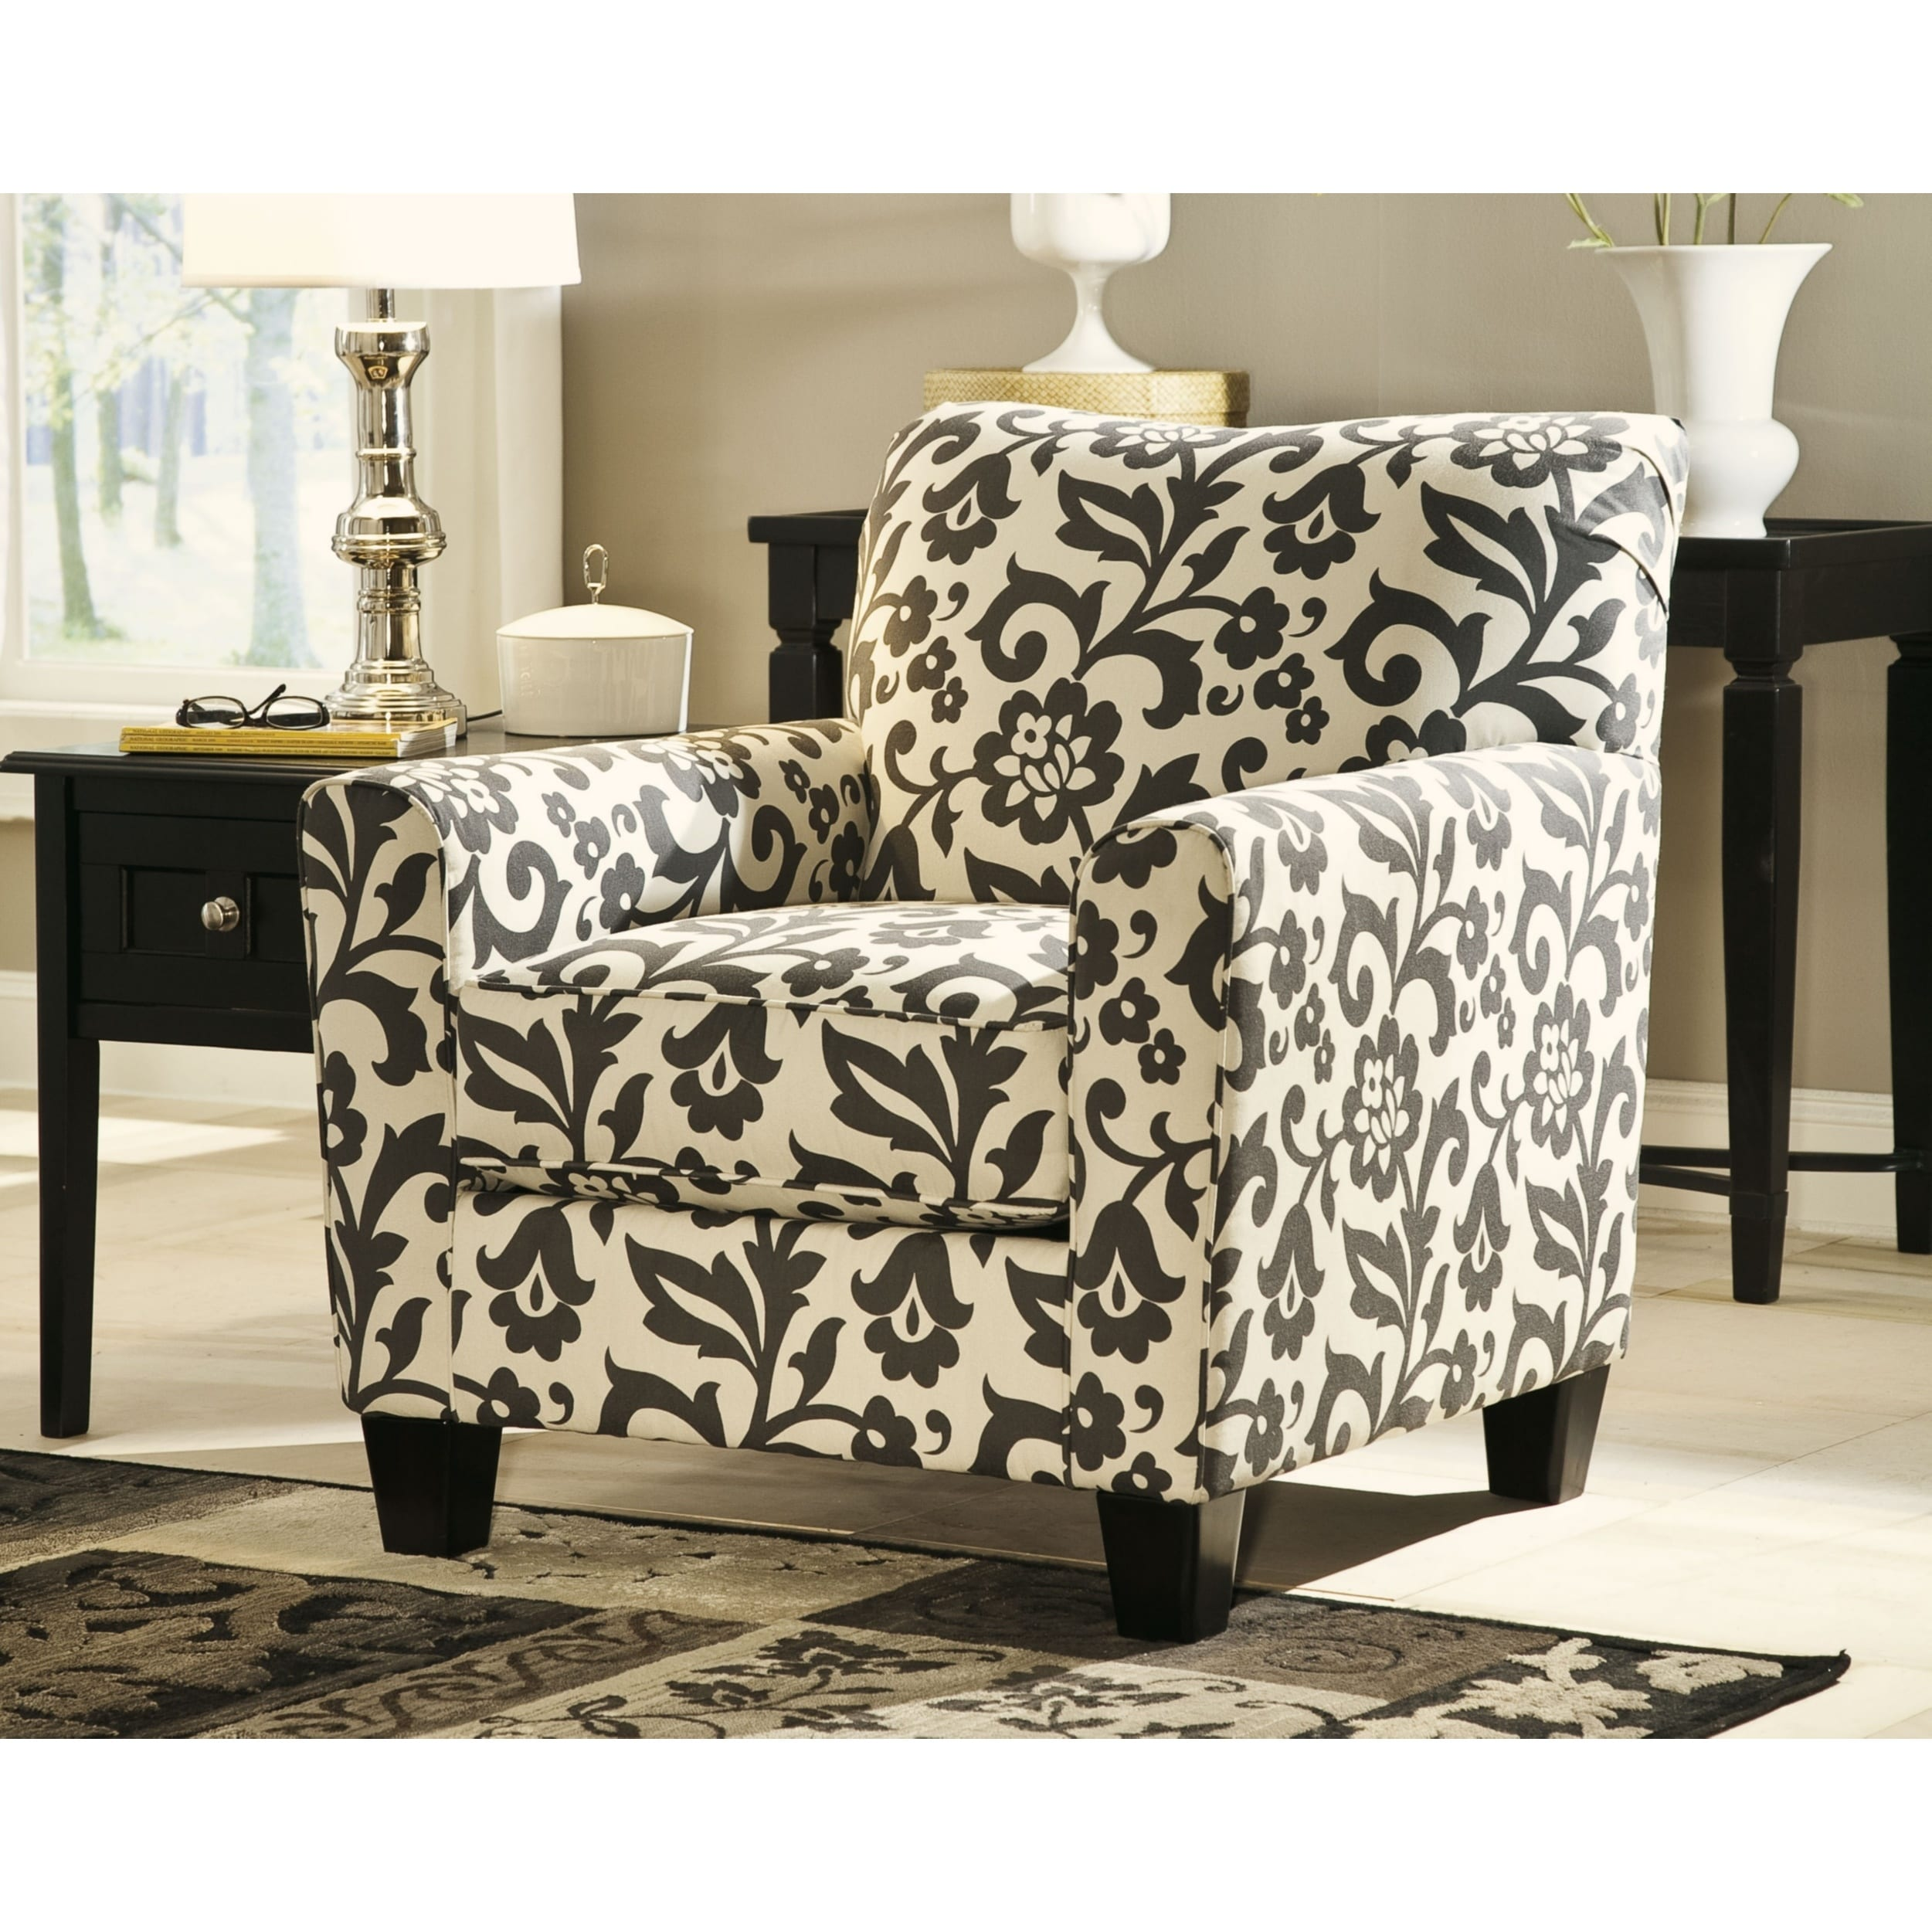 Pleasing Levon Charcoal Floral Print Accent Chair Home Interior And Landscaping Elinuenasavecom